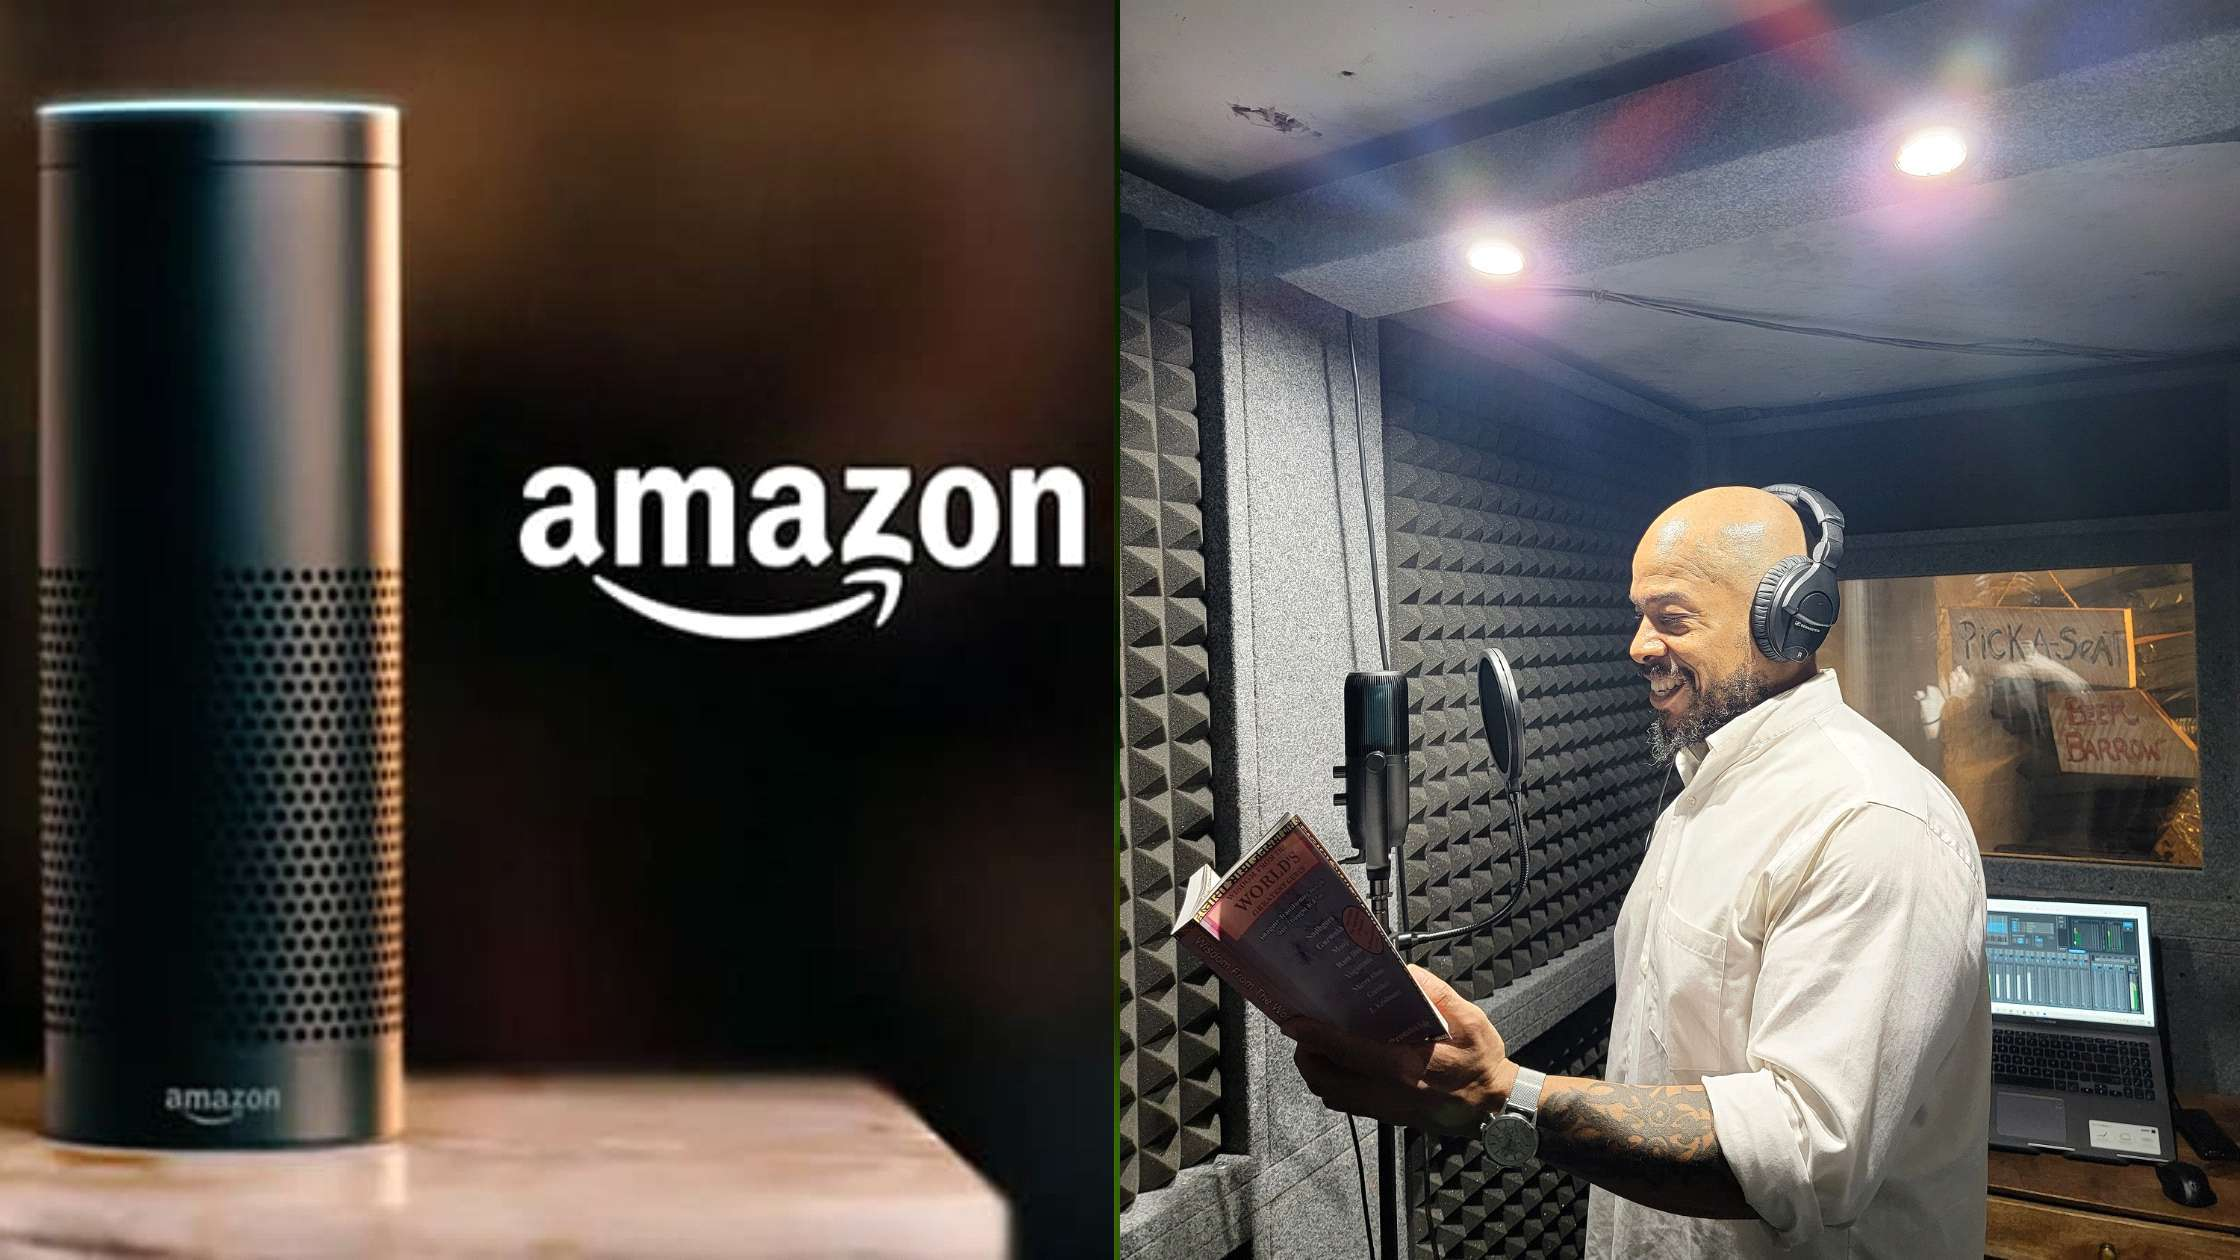 Author Prometheus Worley delivers a daily dose of Wisdom with Amazon's Alexa Flash Briefing from his new book Wisdom From The World's Greatest Gurus